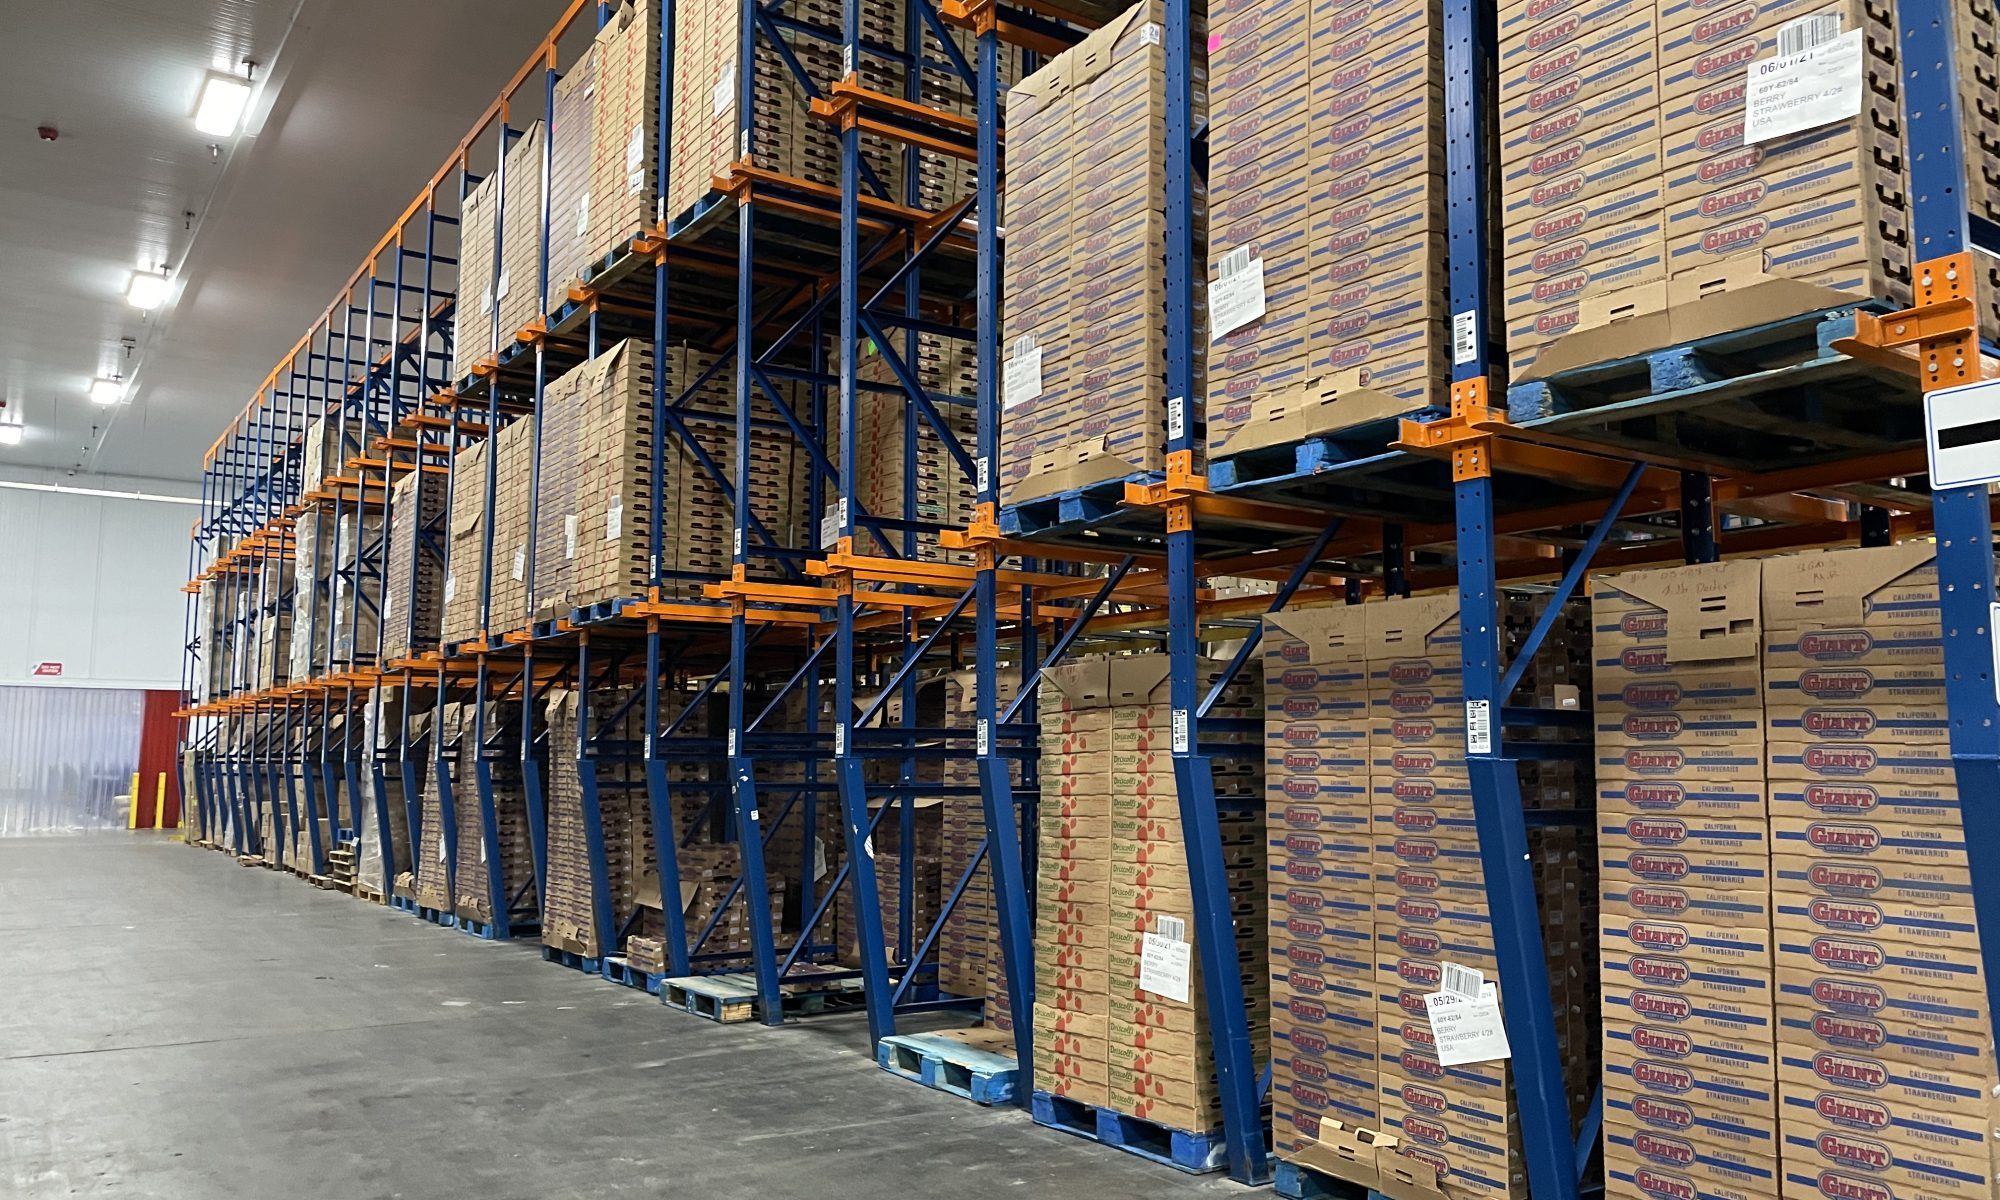 Pallet racking in a lean warehouse design